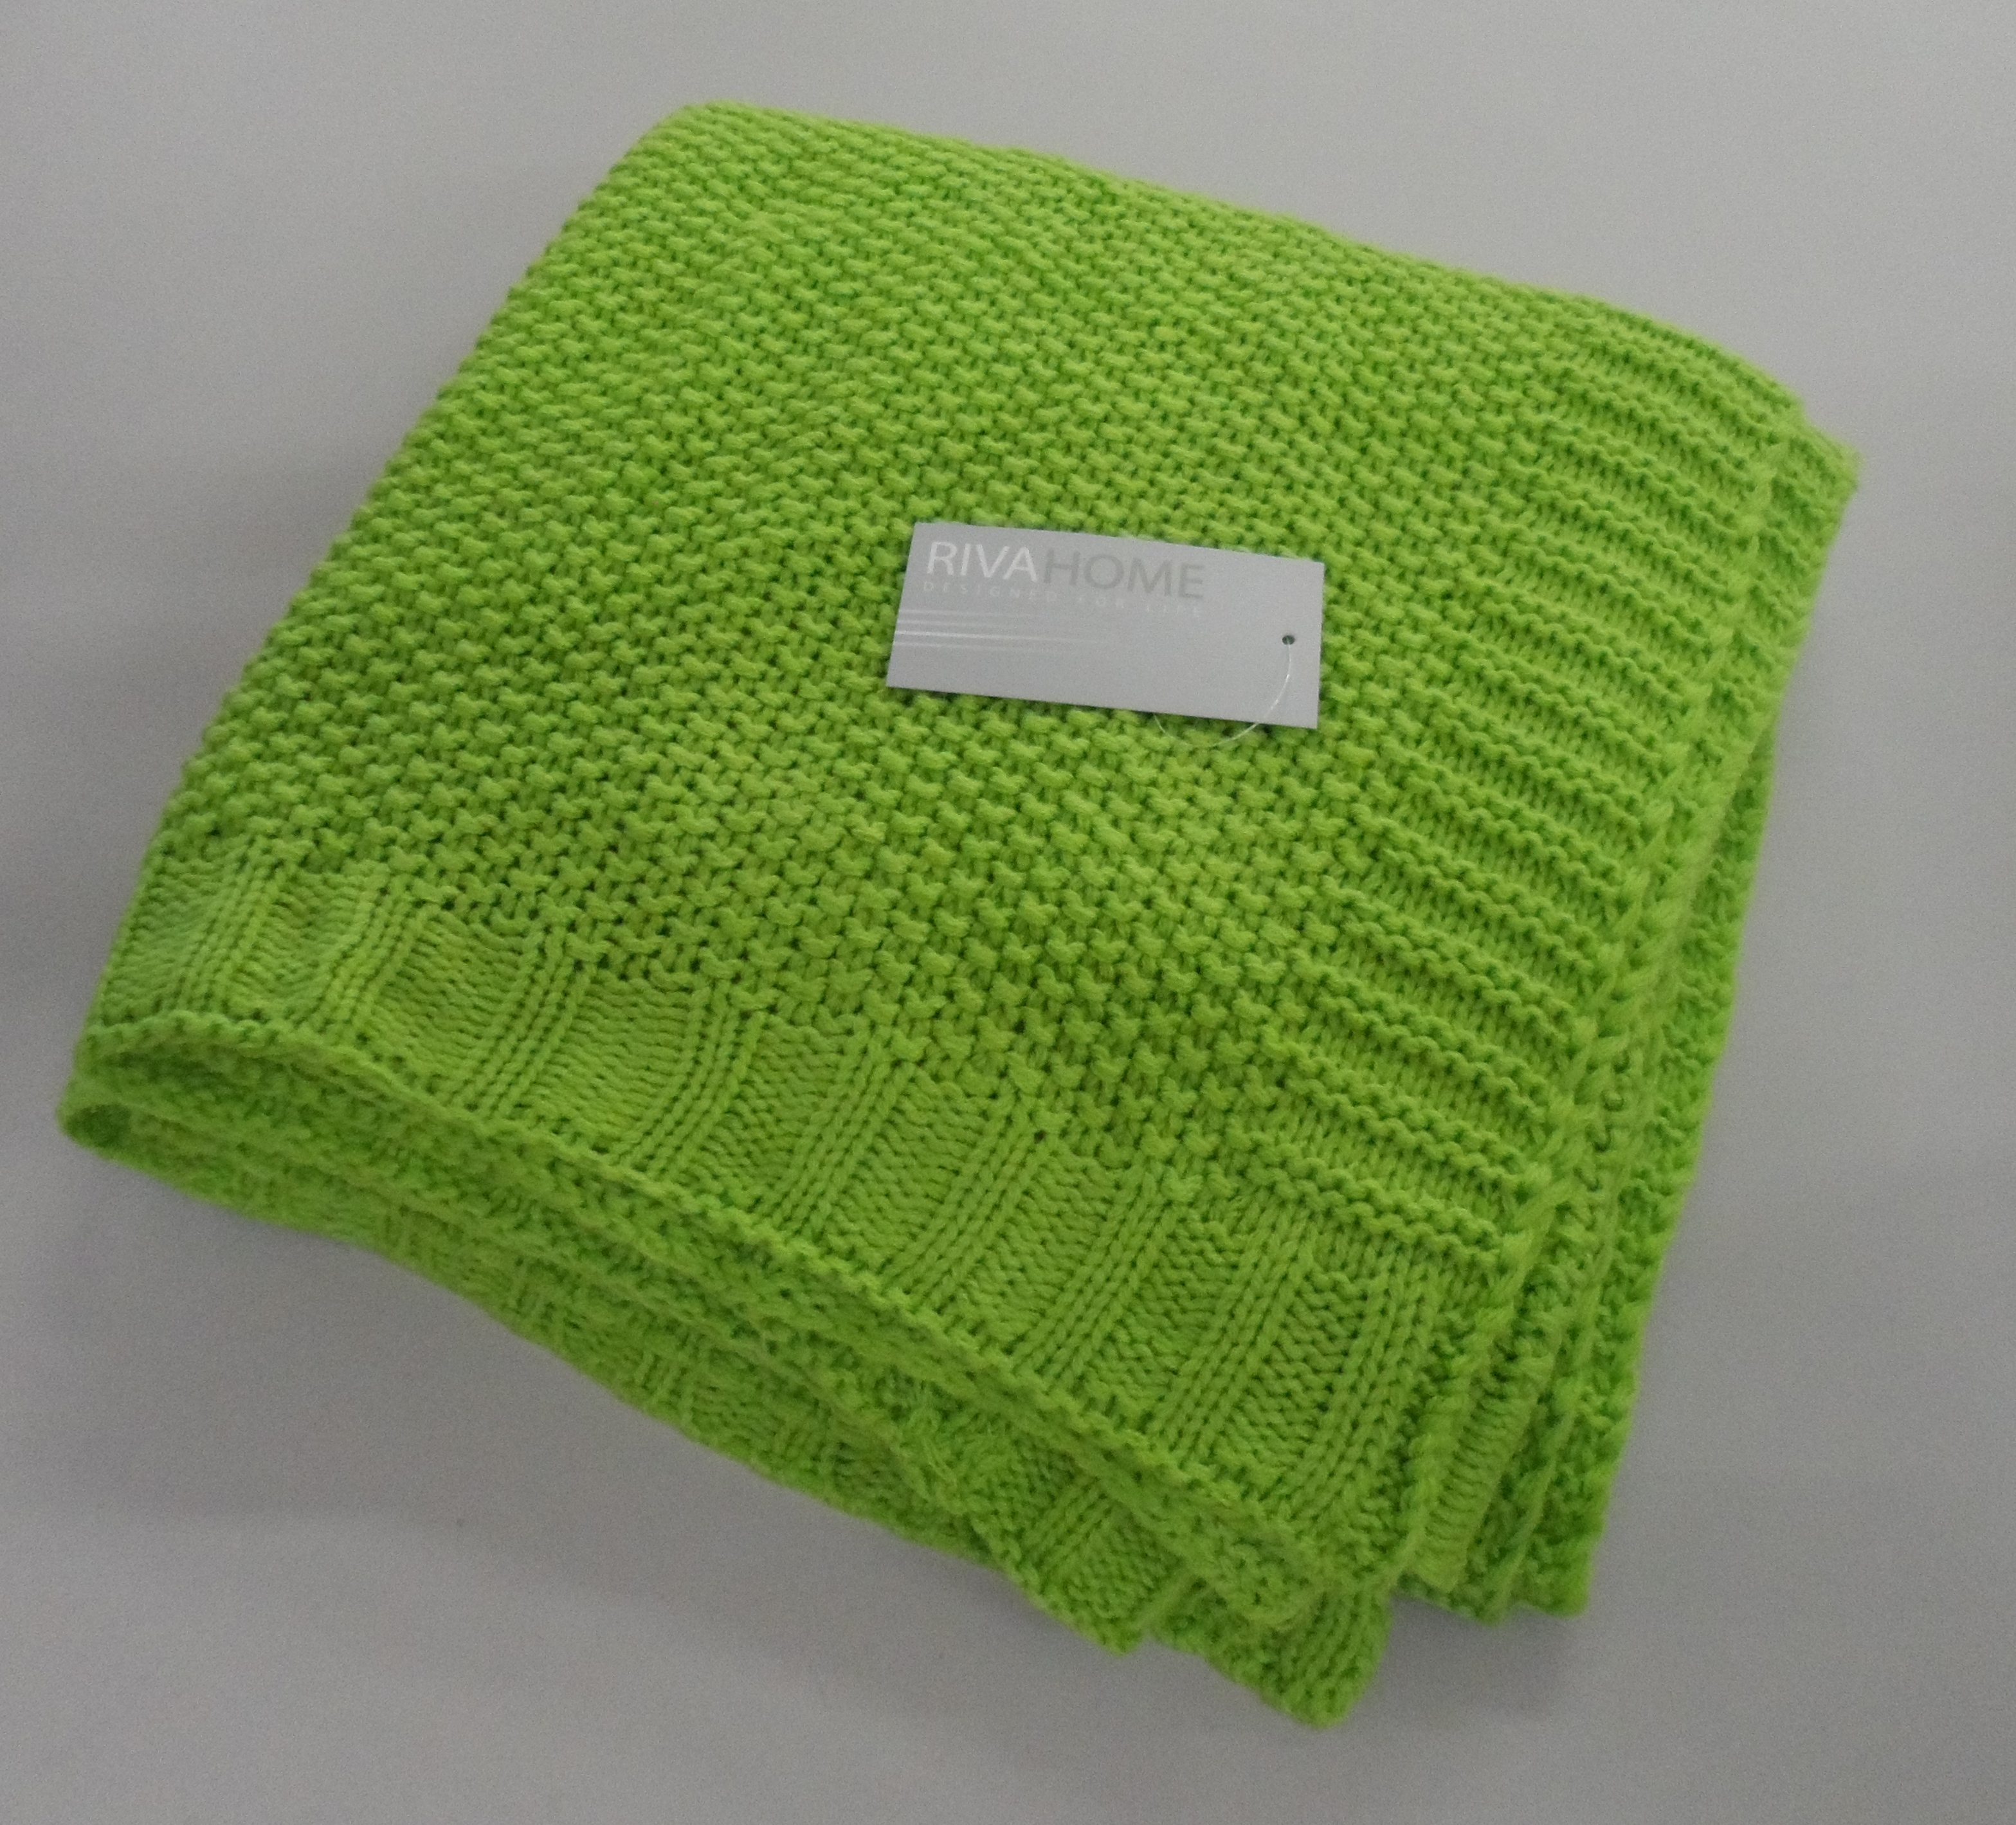 riva home knitted throw blanket 130 x 150 cm lime green new ebay. Black Bedroom Furniture Sets. Home Design Ideas